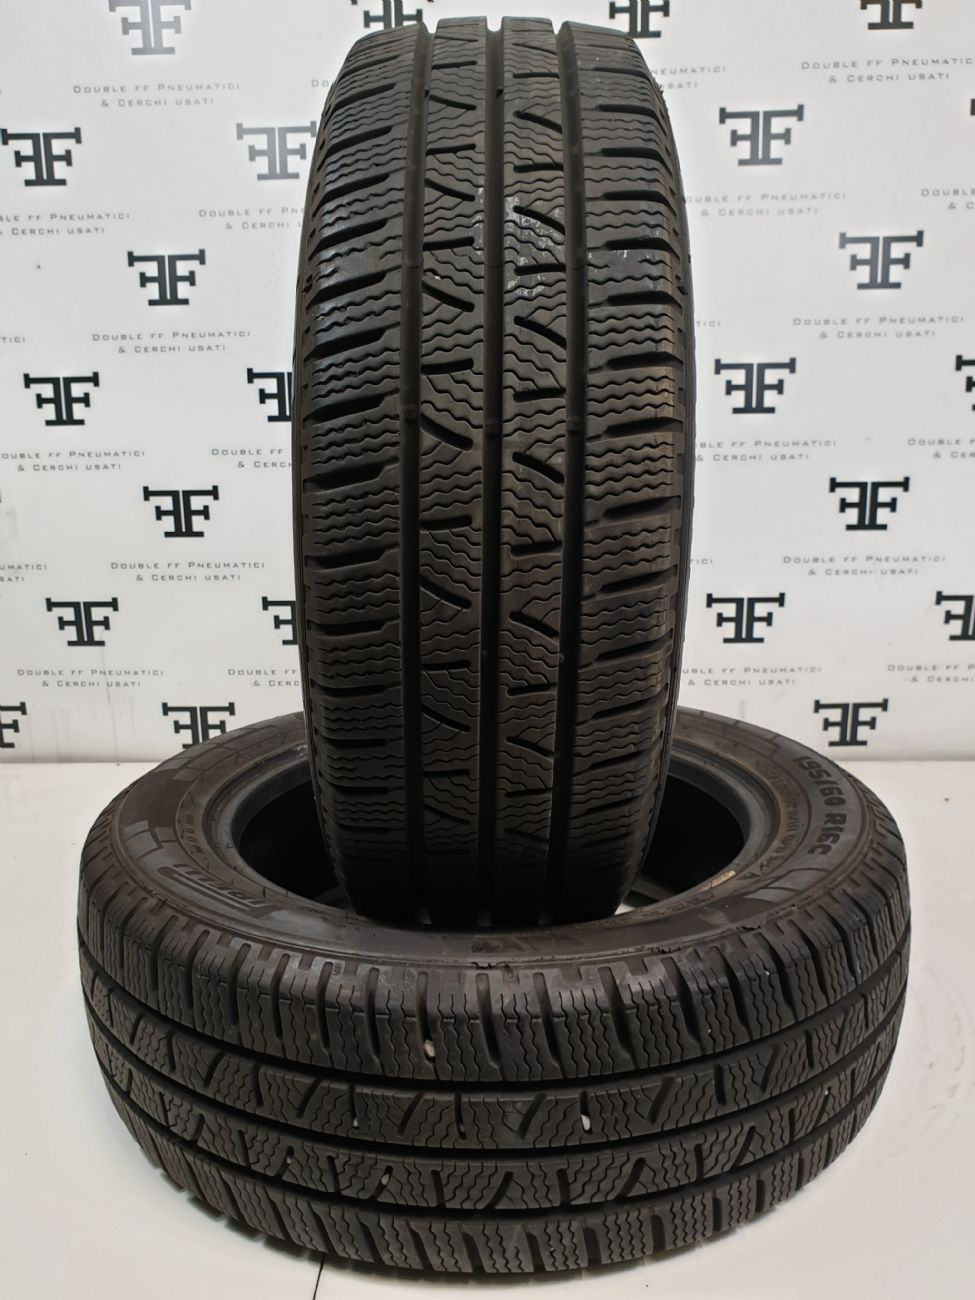 195/60 R16C 99/97 T PIRELLI CARRIER WINTER DEMONTE